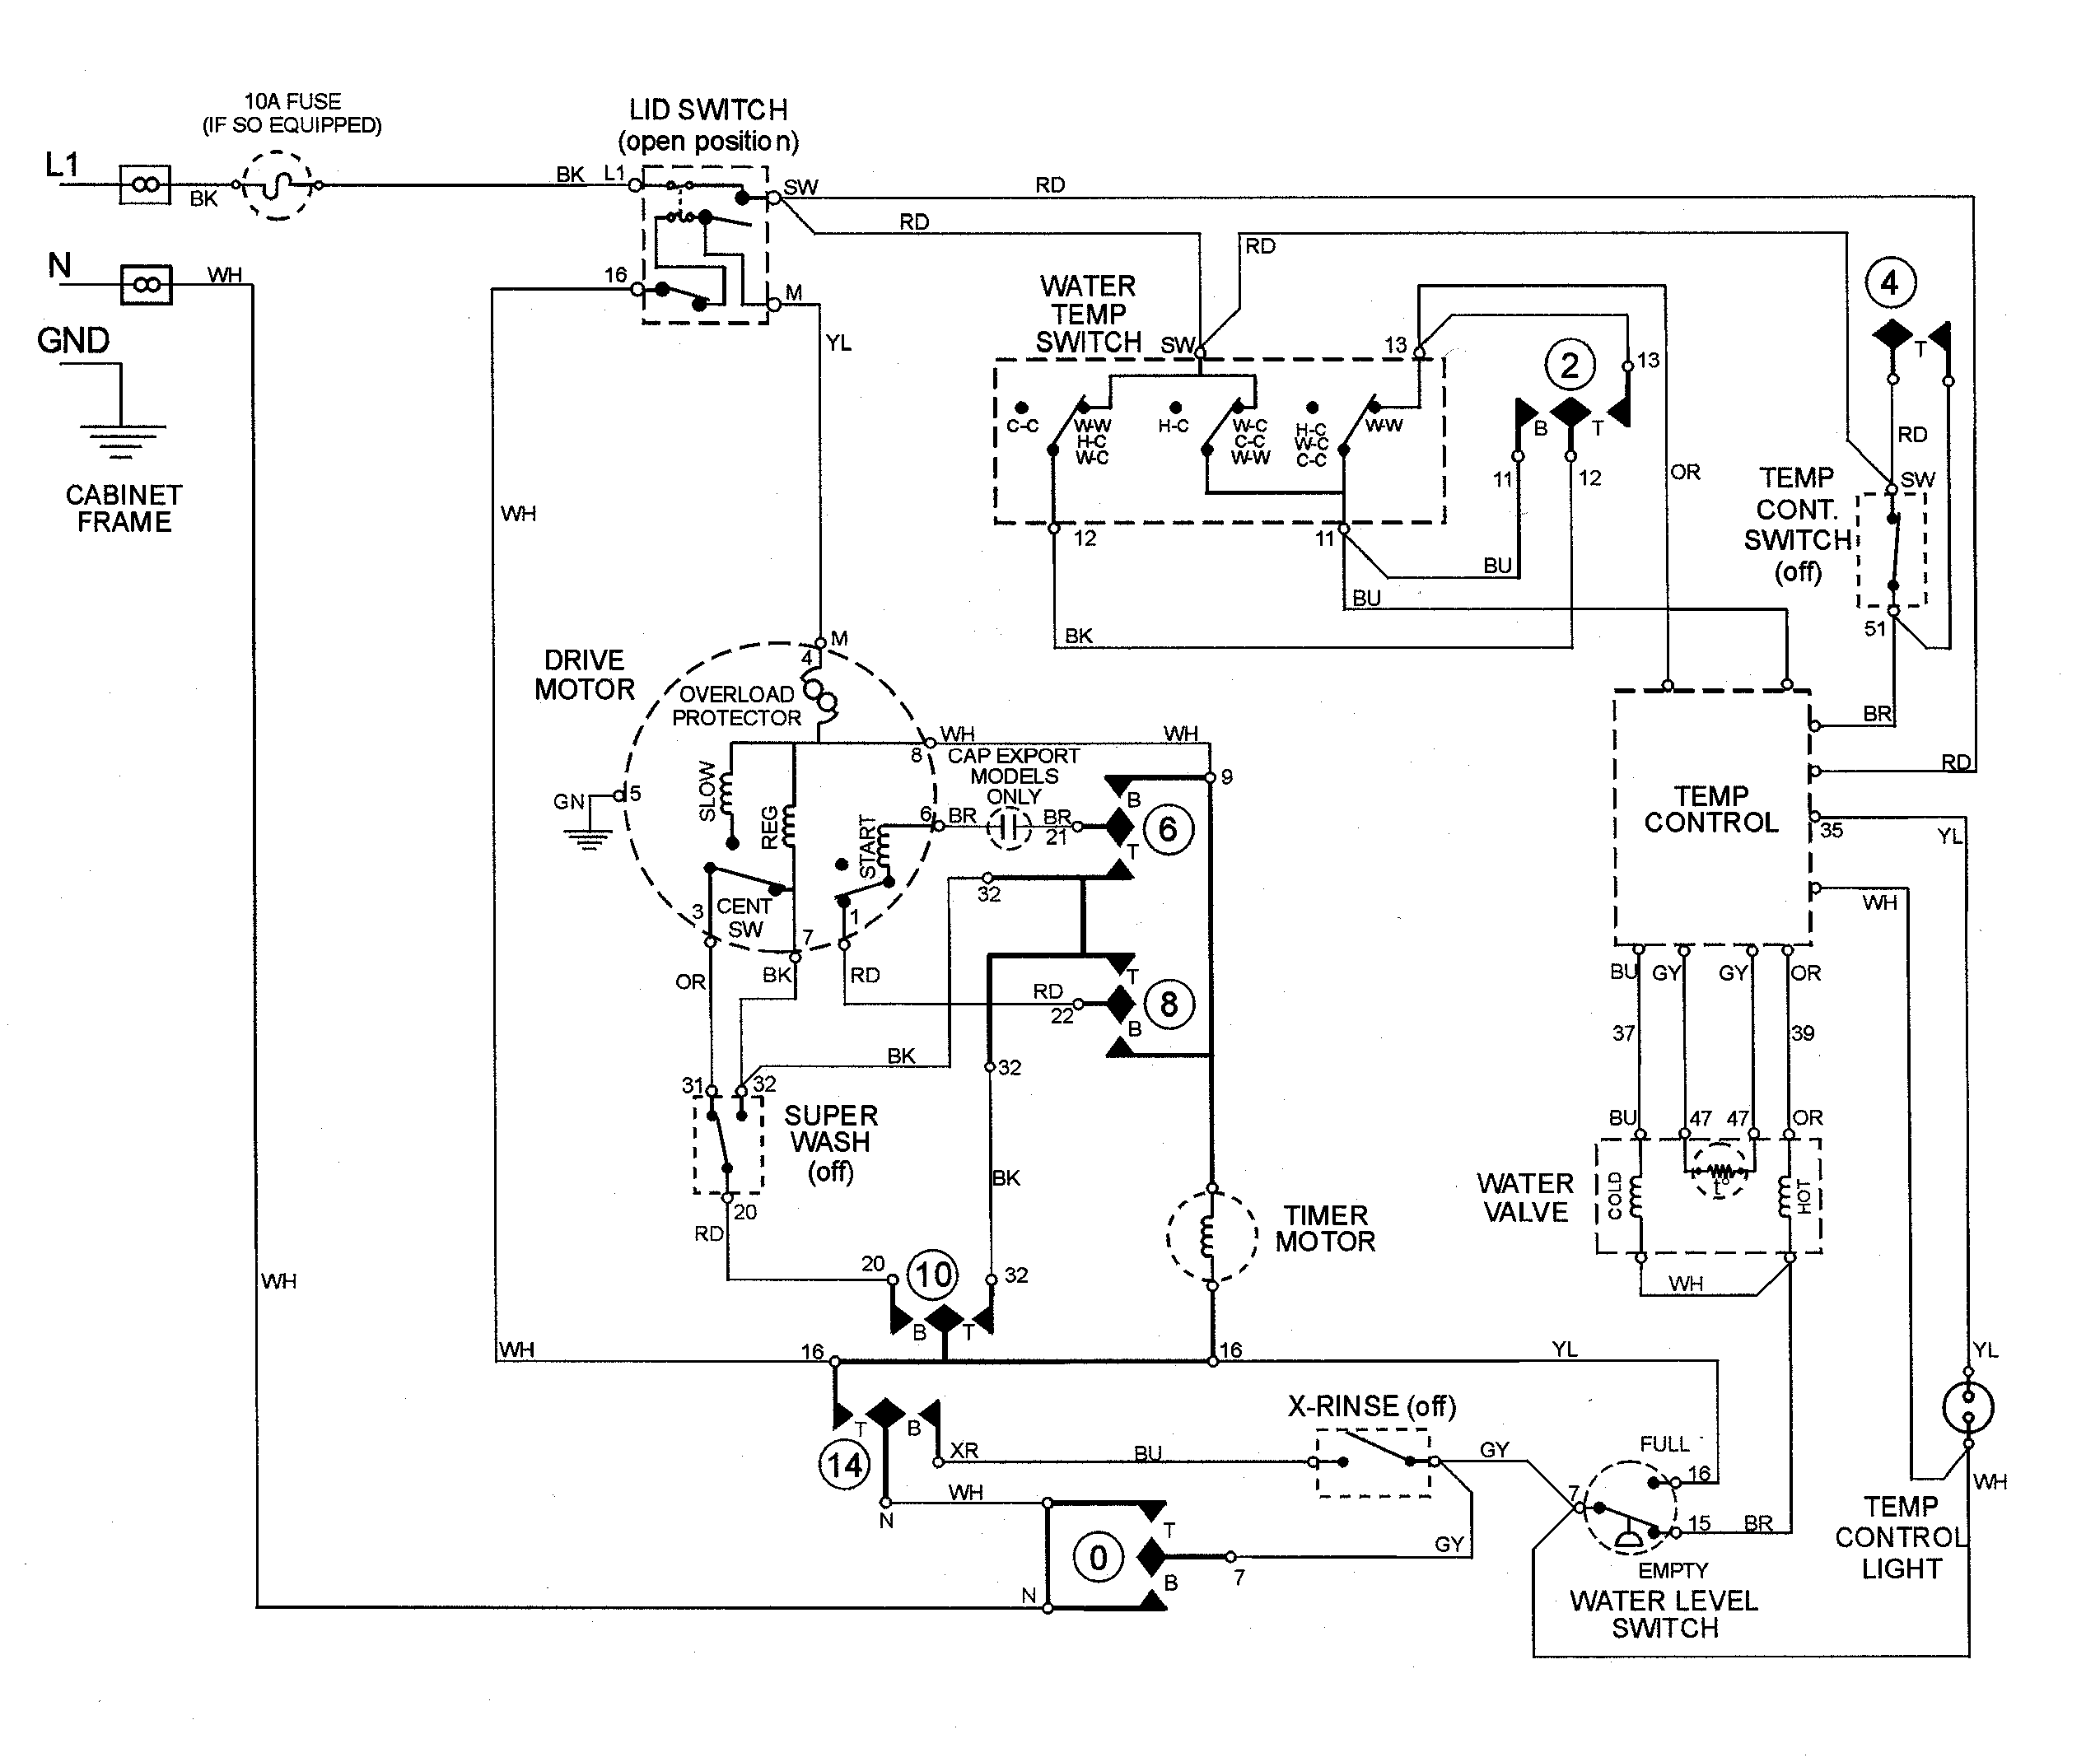 Washer Motor Wiring Diagram 6 4 Powerstroke Oil Pressure Switch Wiring Diagram Begeboy Wiring Diagram Source